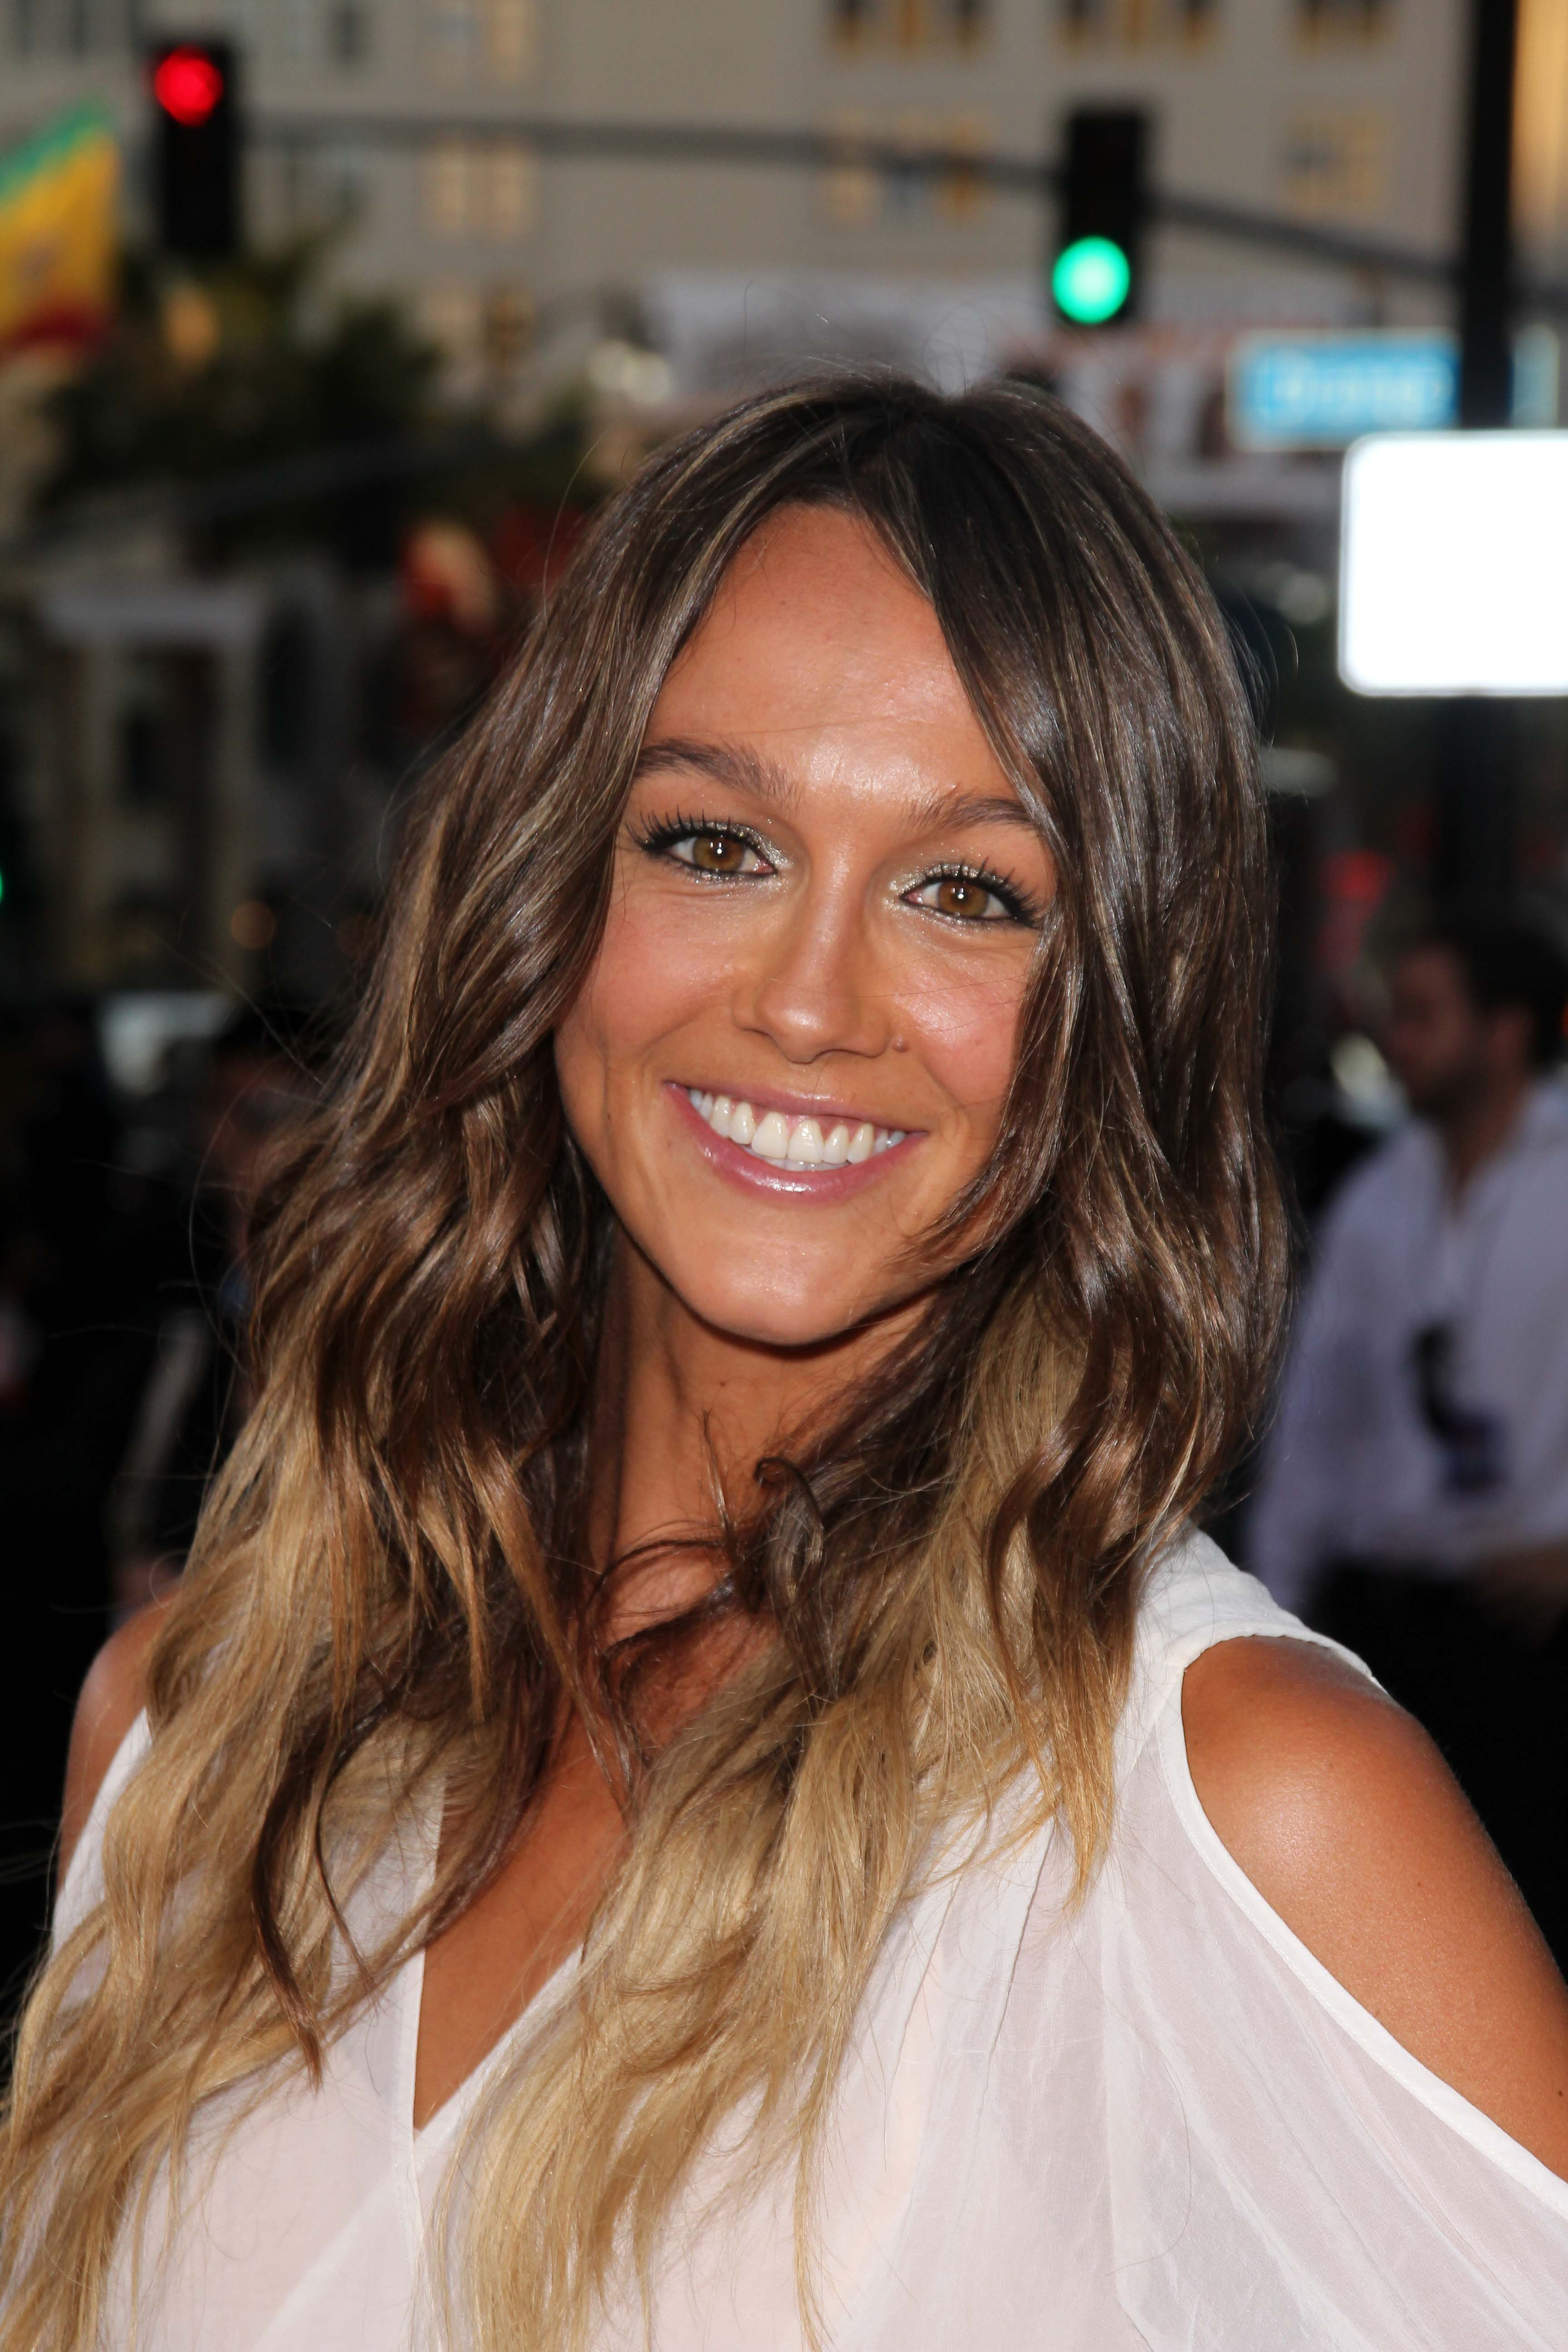 Sharni Vinson nude (75 photo), Pussy, Fappening, Feet, braless 2020